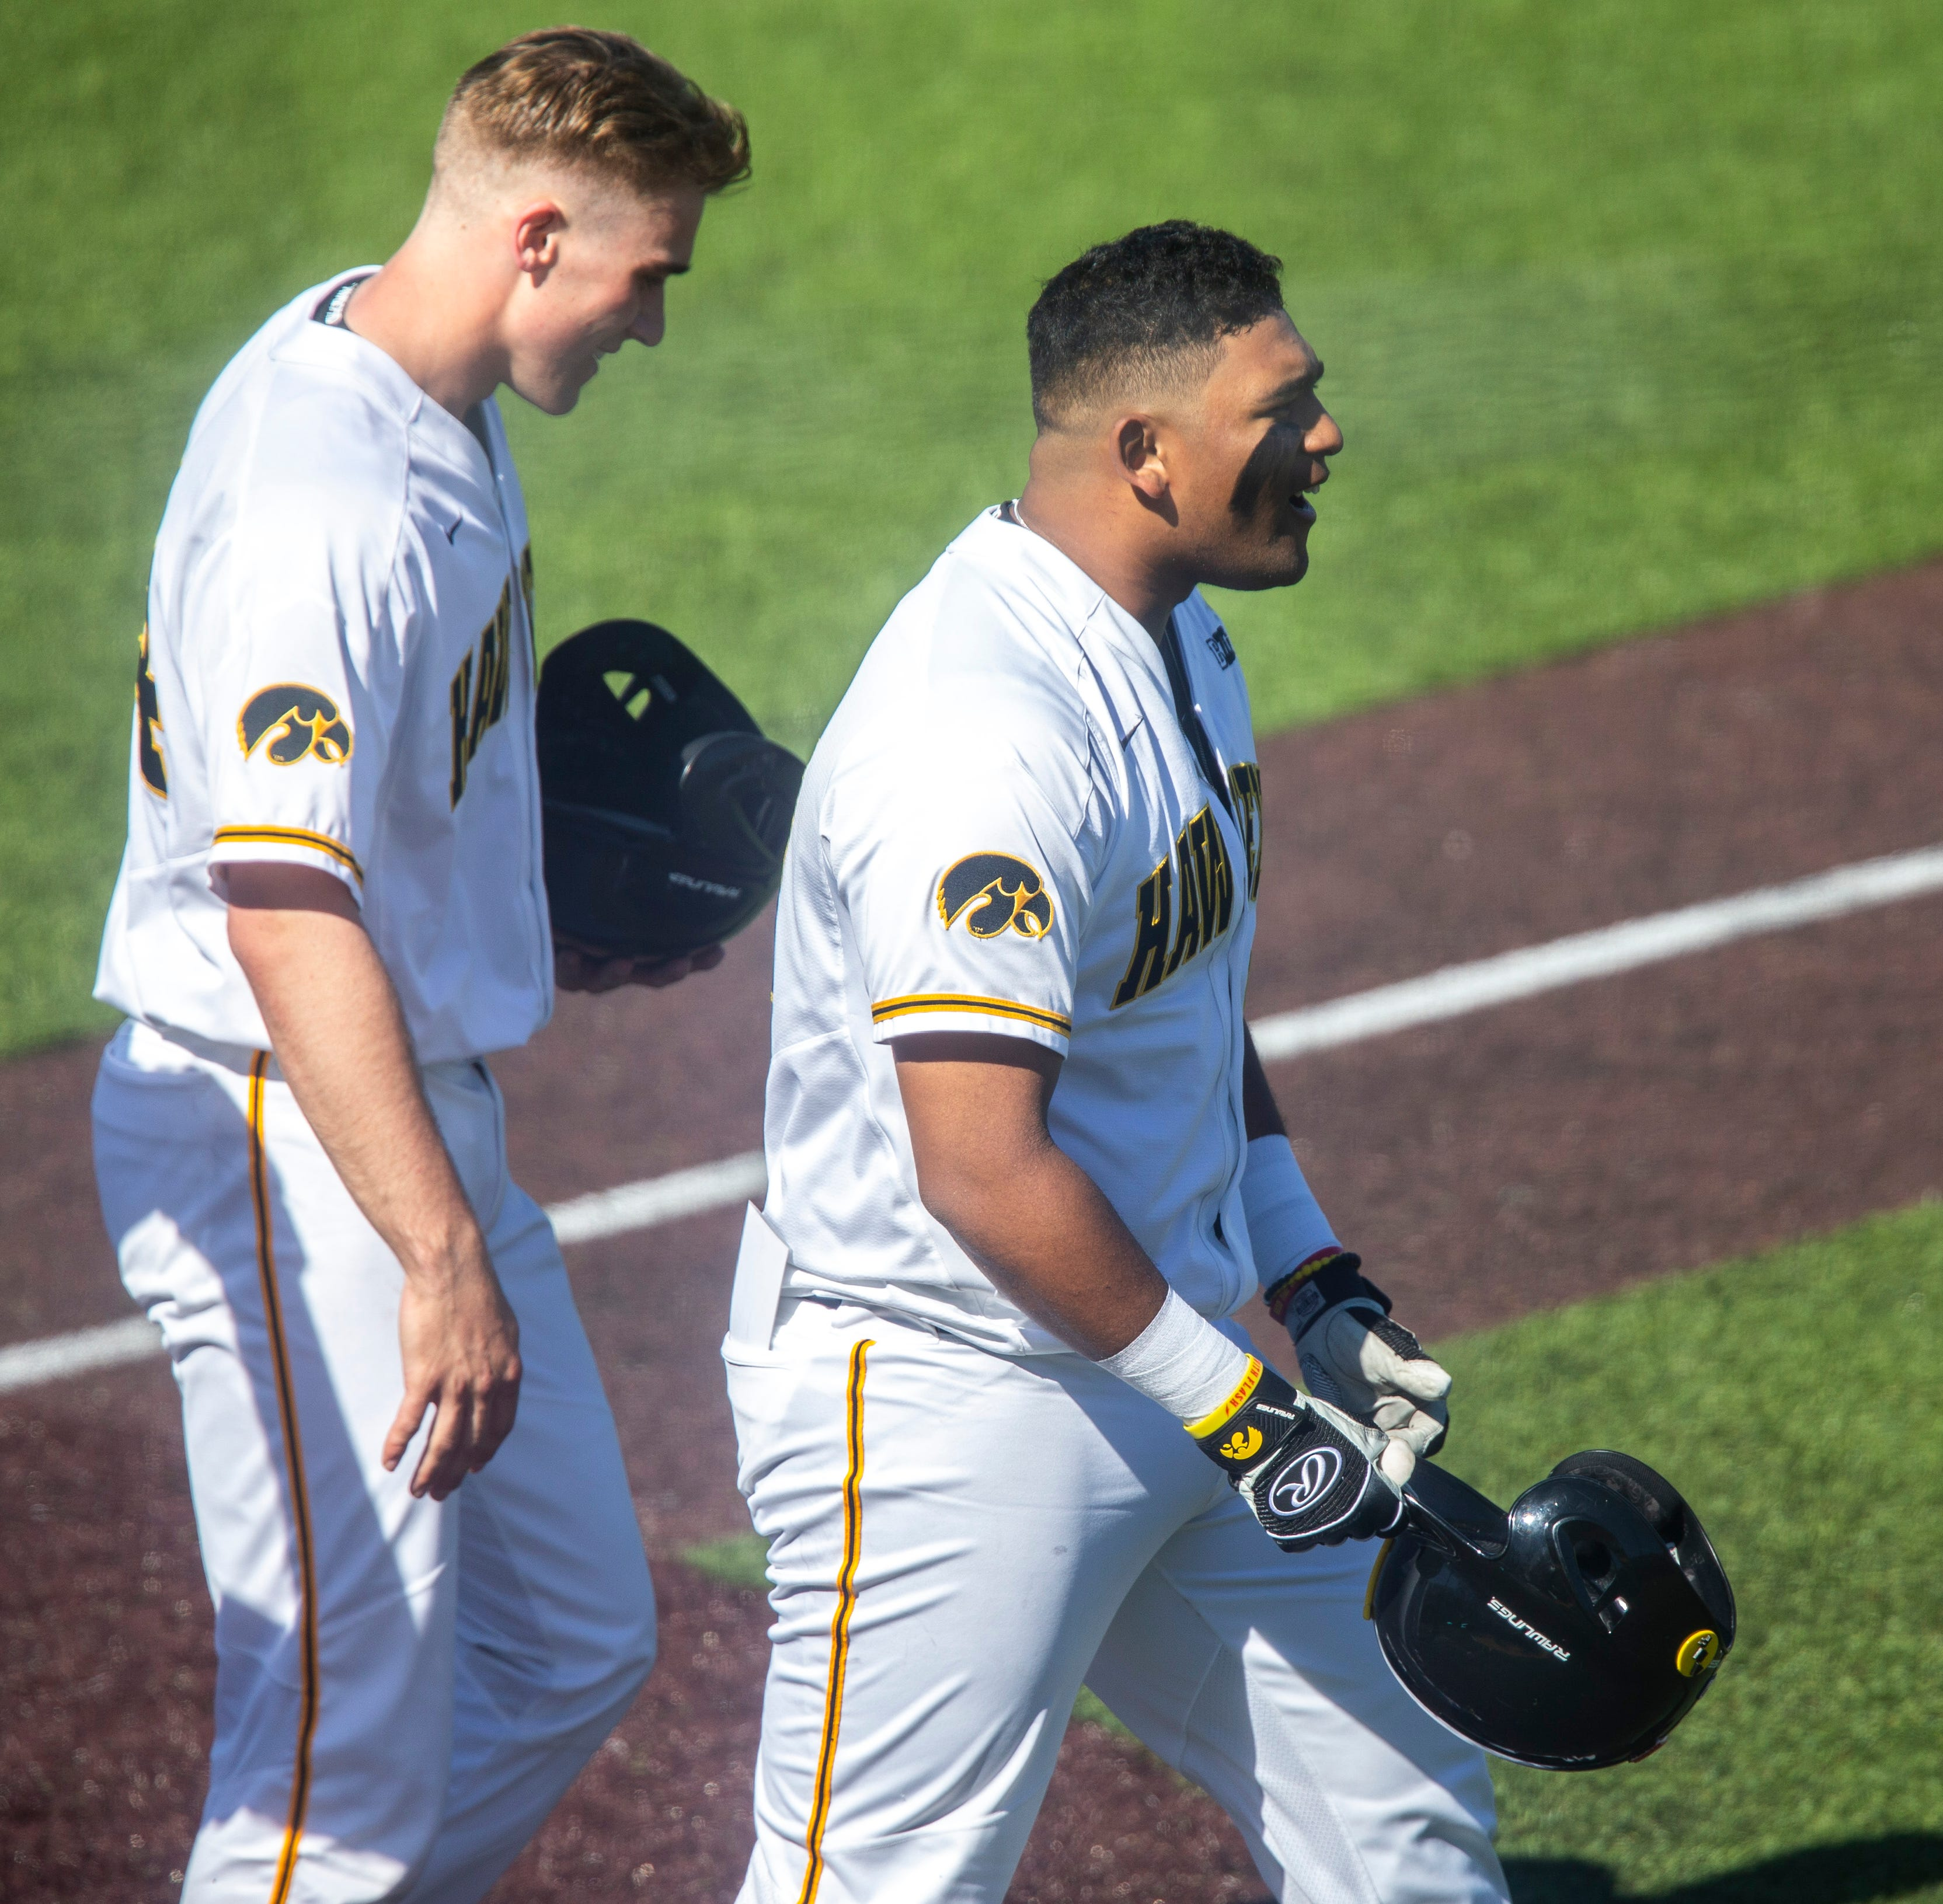 Emphatic fifth inning propels Iowa to 17-9 rout, series win over Nebraska